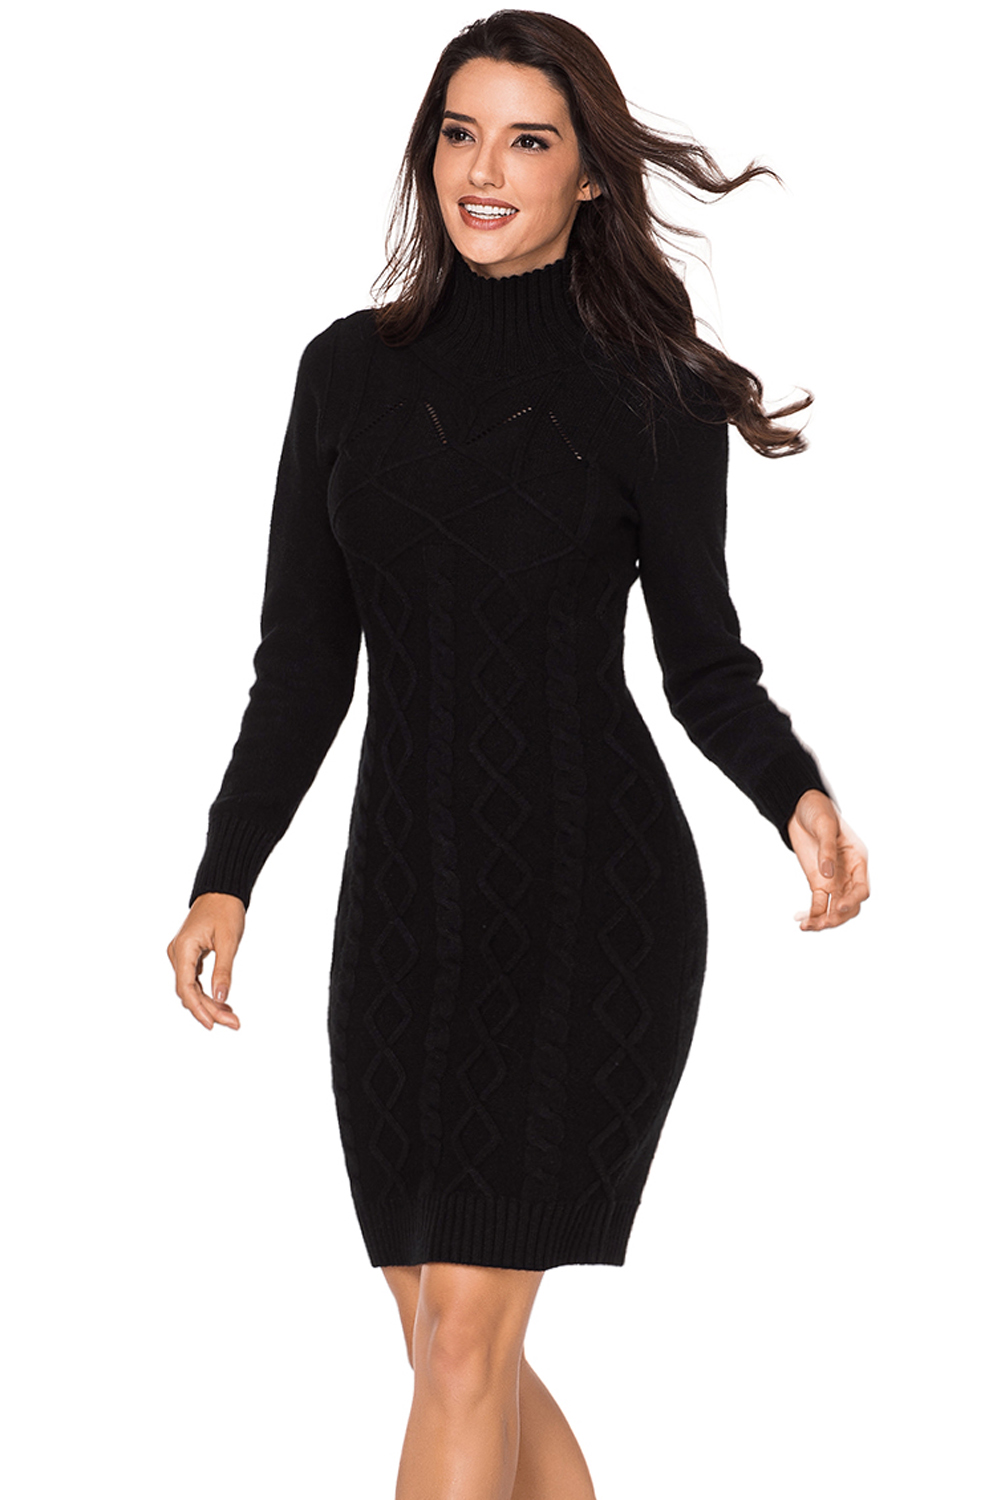 b4400e3e566 Affordable Black Cable Knit High Neck Sweater Dress from China